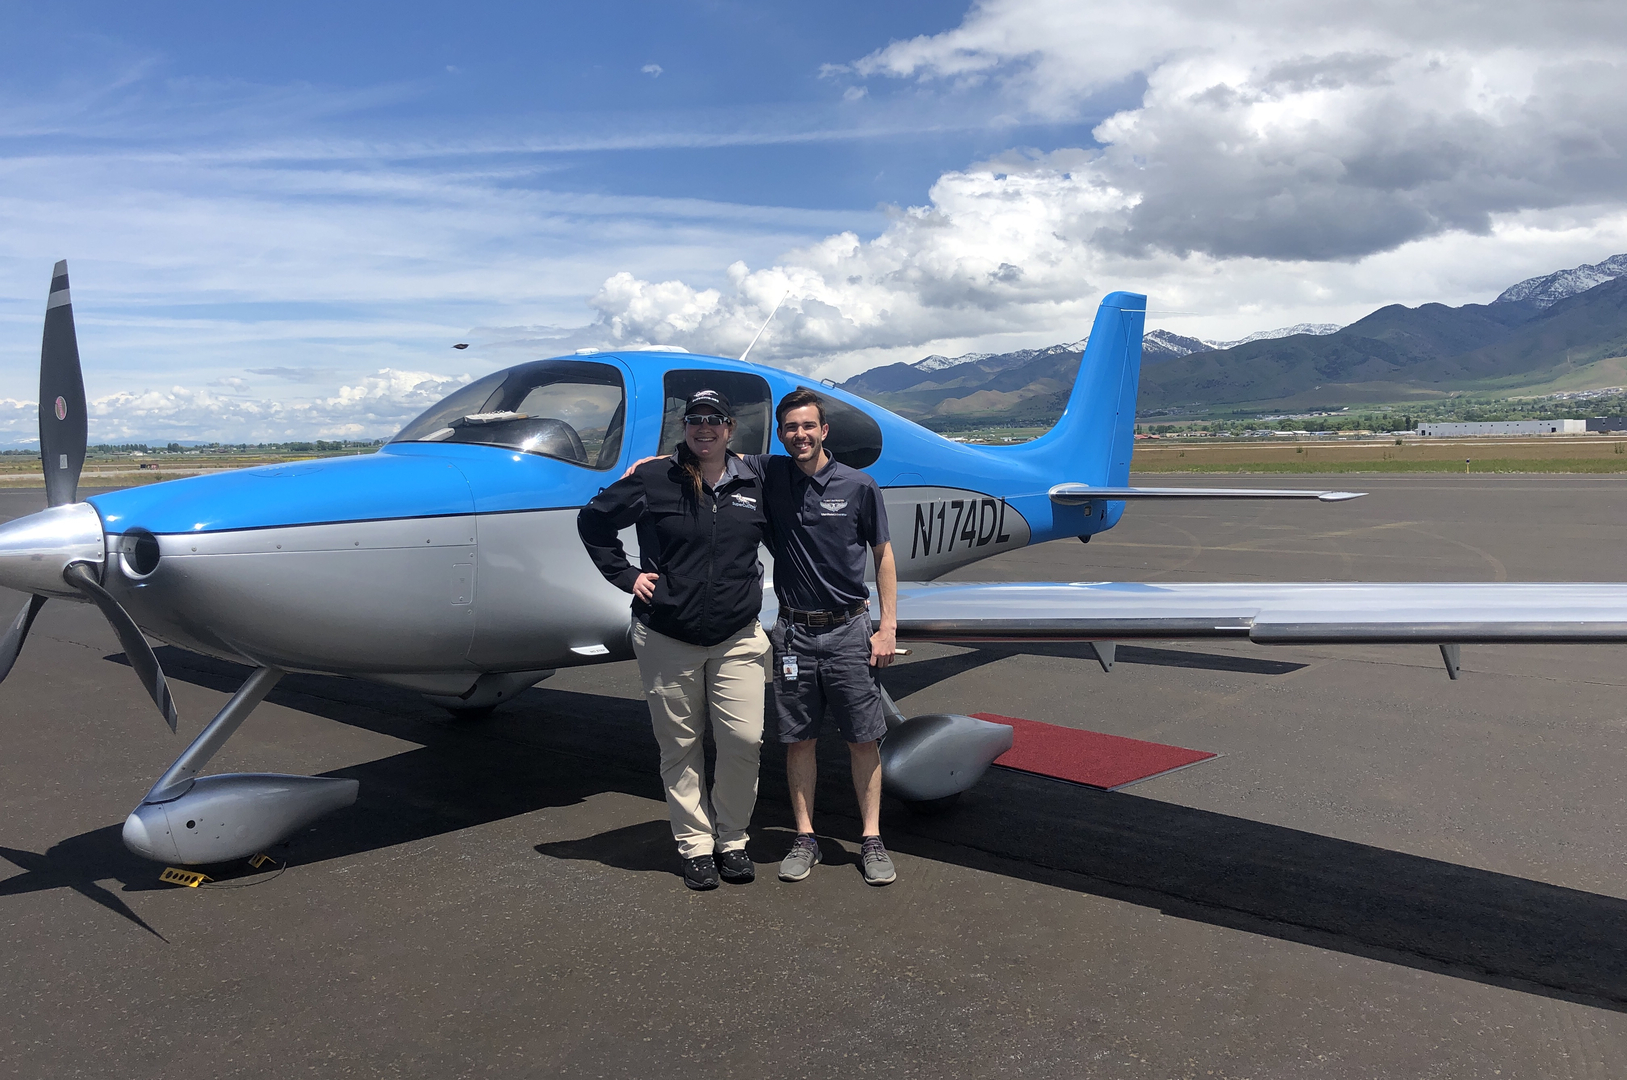 Ferry Pilot - FullThrottle Aviation LLC